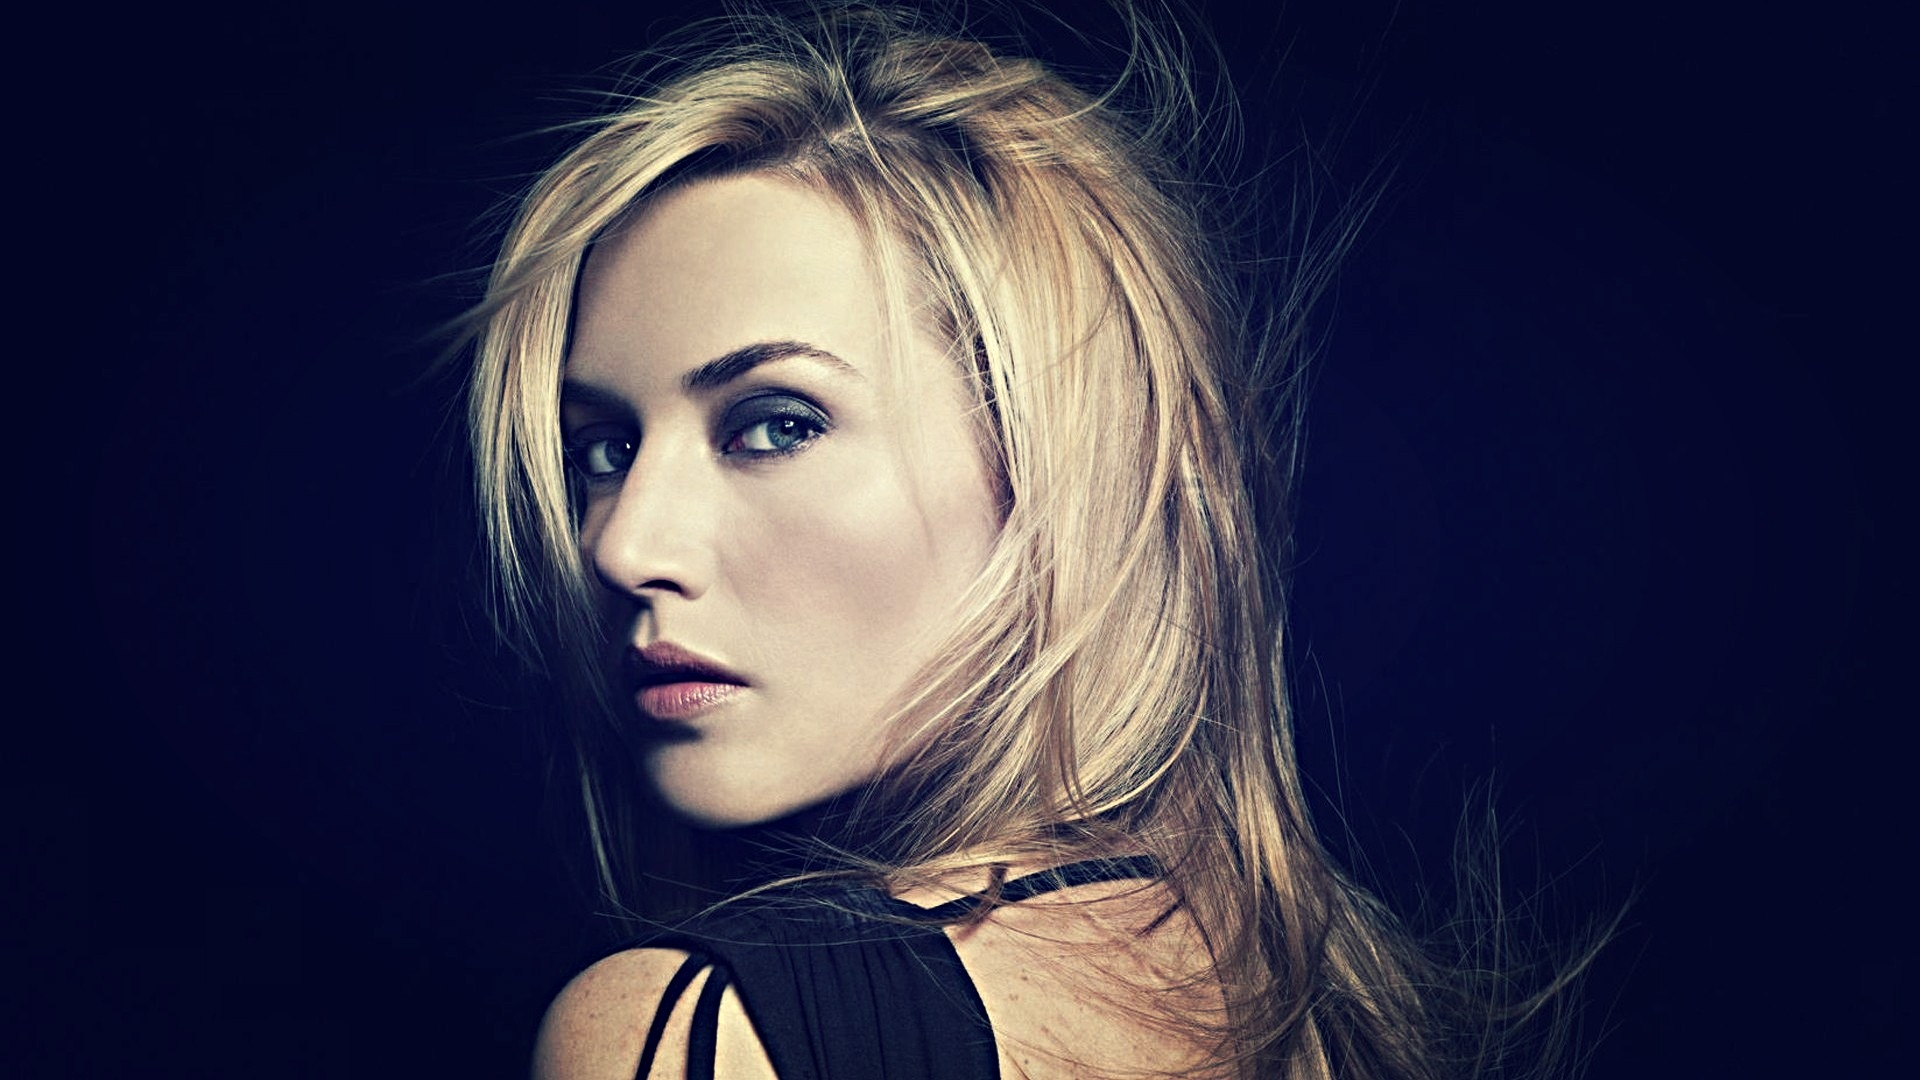 1920x1080 - Kate Winslet Wallpapers 13